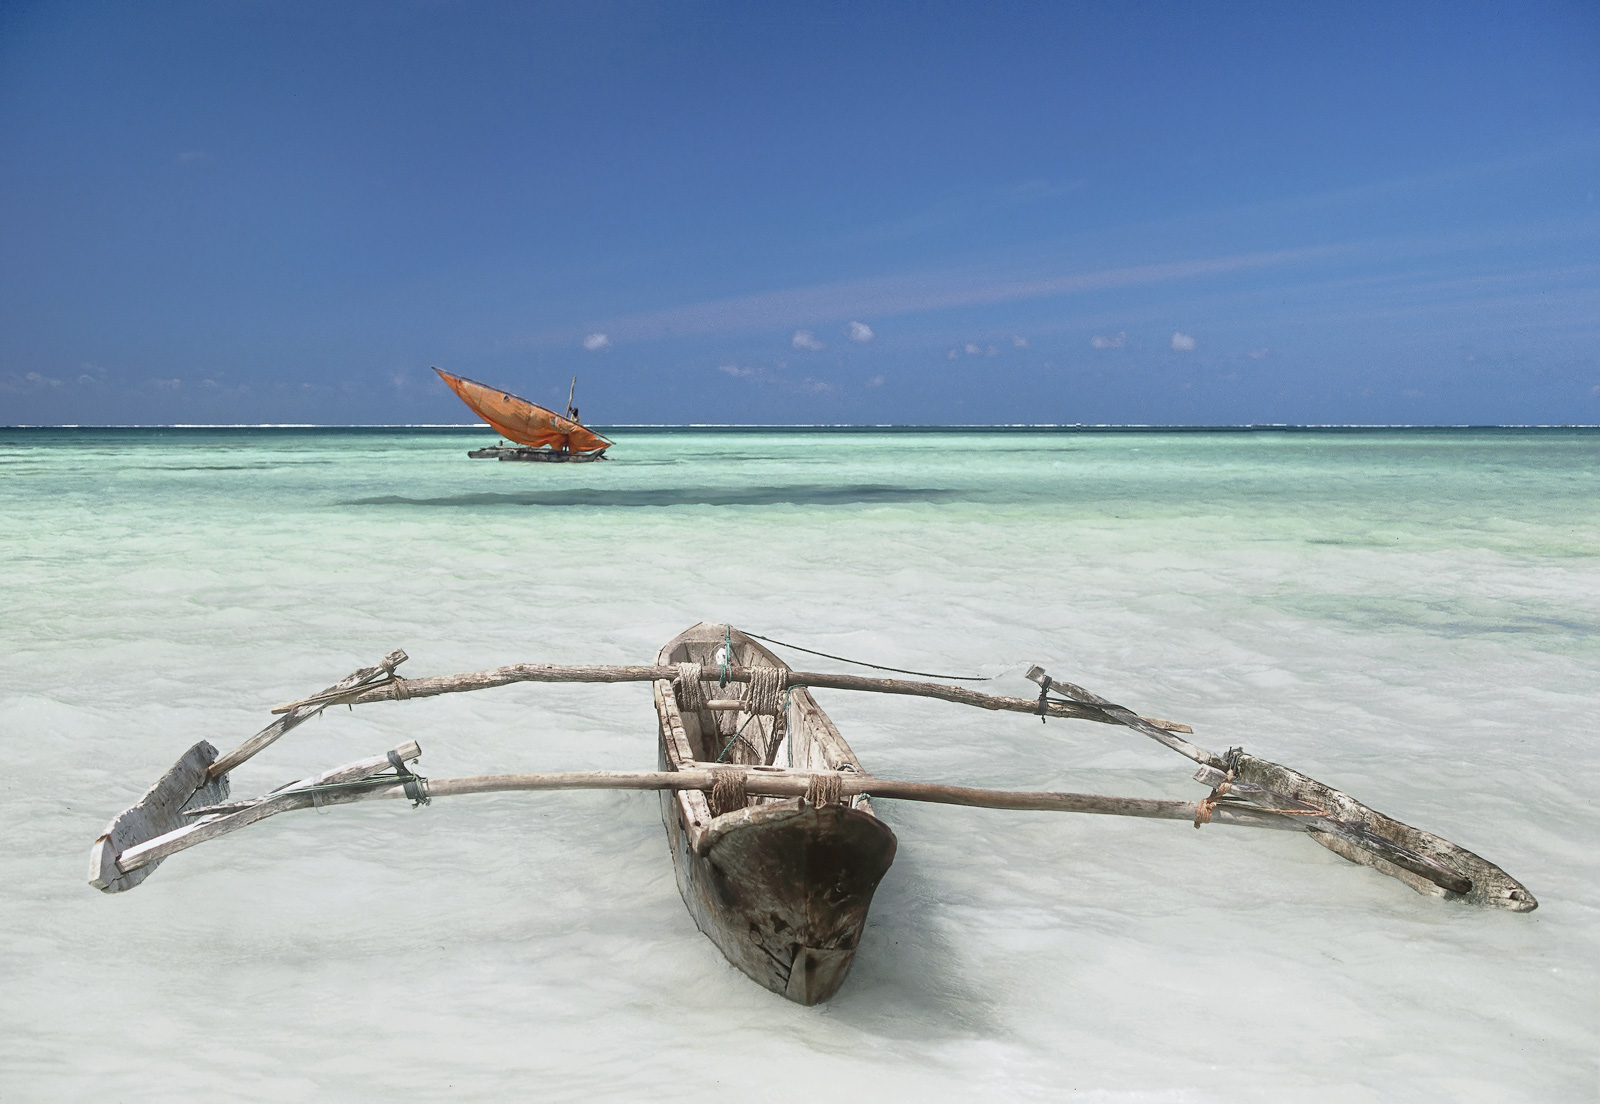 I came across this unbelievably beautful scene on the deserted east coast of Zanzibar.  After nearly 80 miles dodging palm trees...